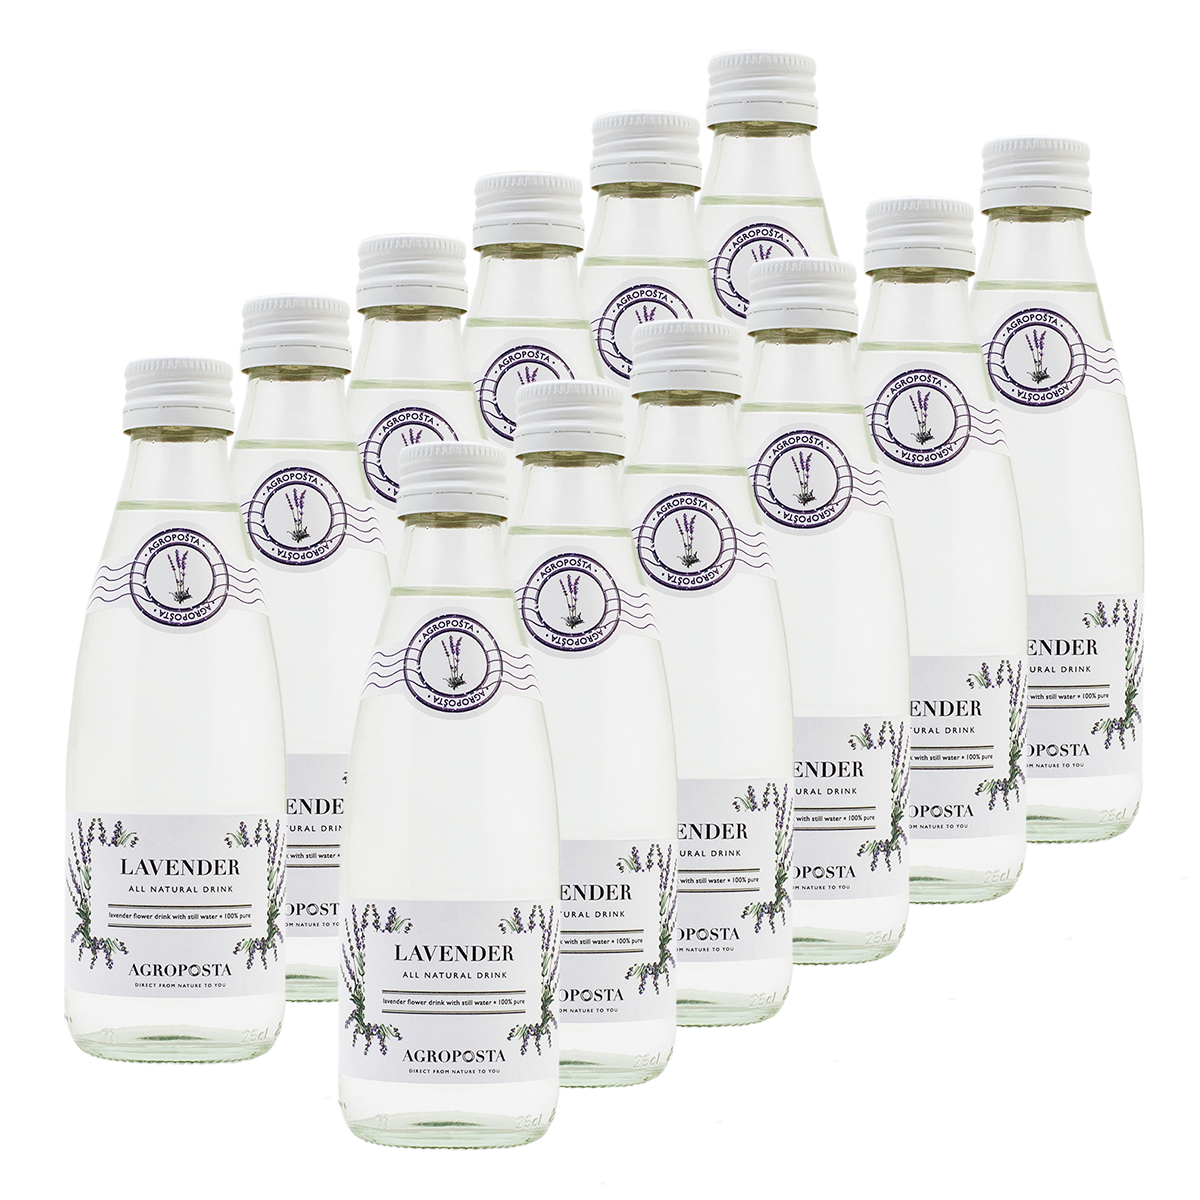 Image of AgropoÅ!ta: 100% Pure, All-Natural, Guilt-Free Drinks, Flavored Water, Lavender